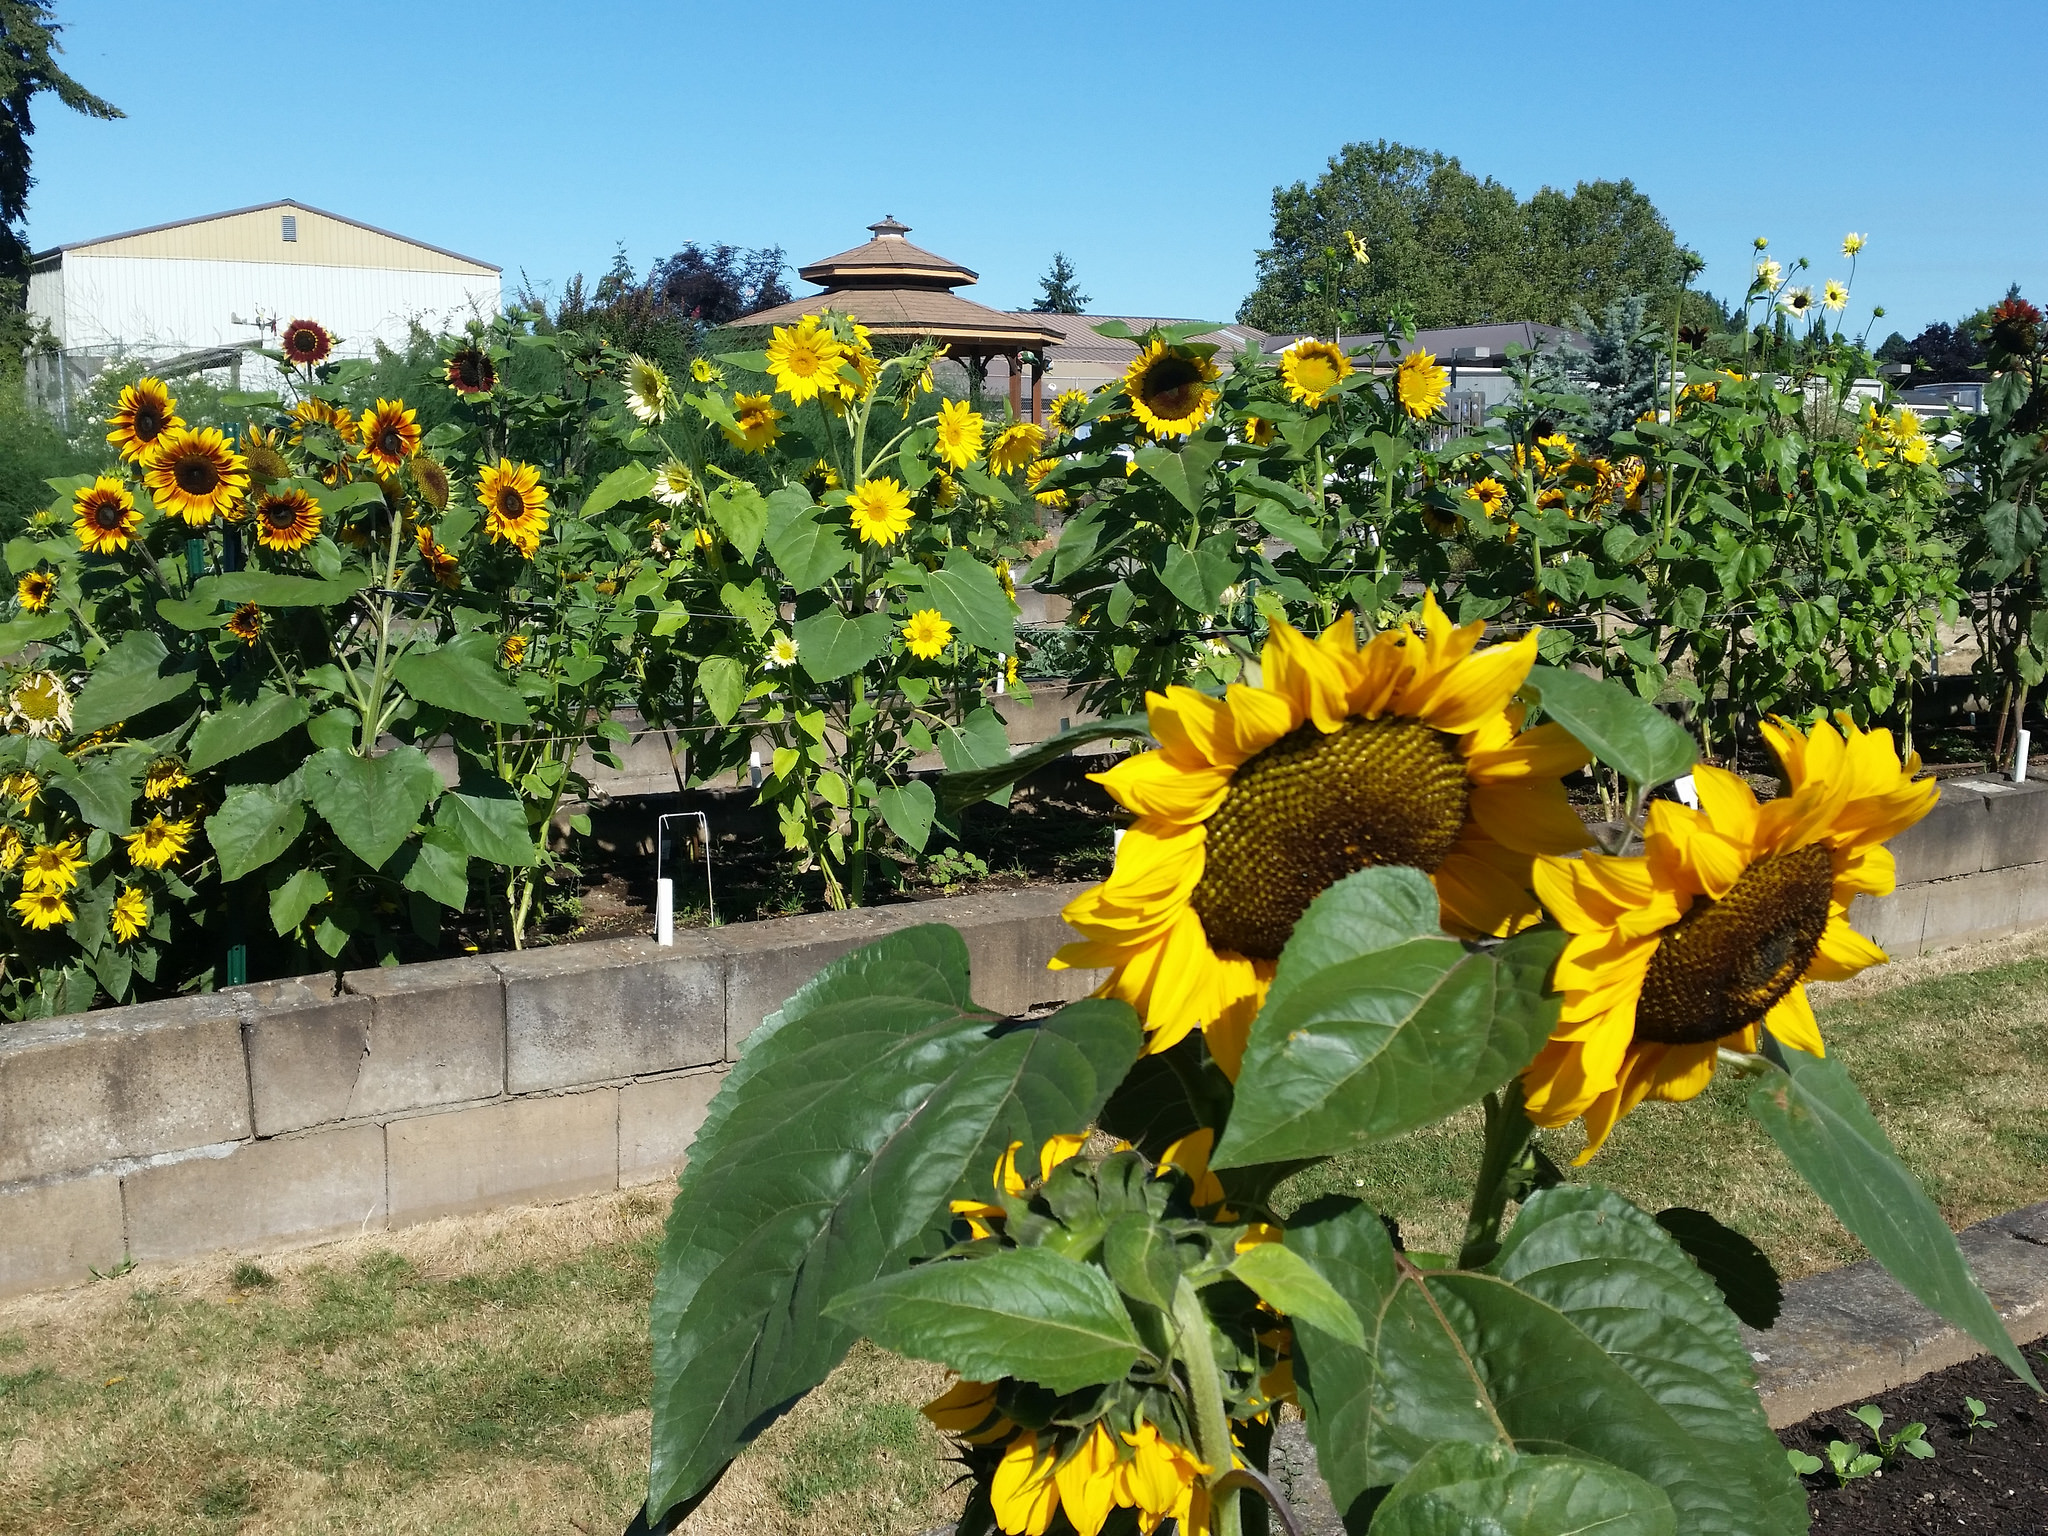 Sunflowers burst onto scene with new personalities